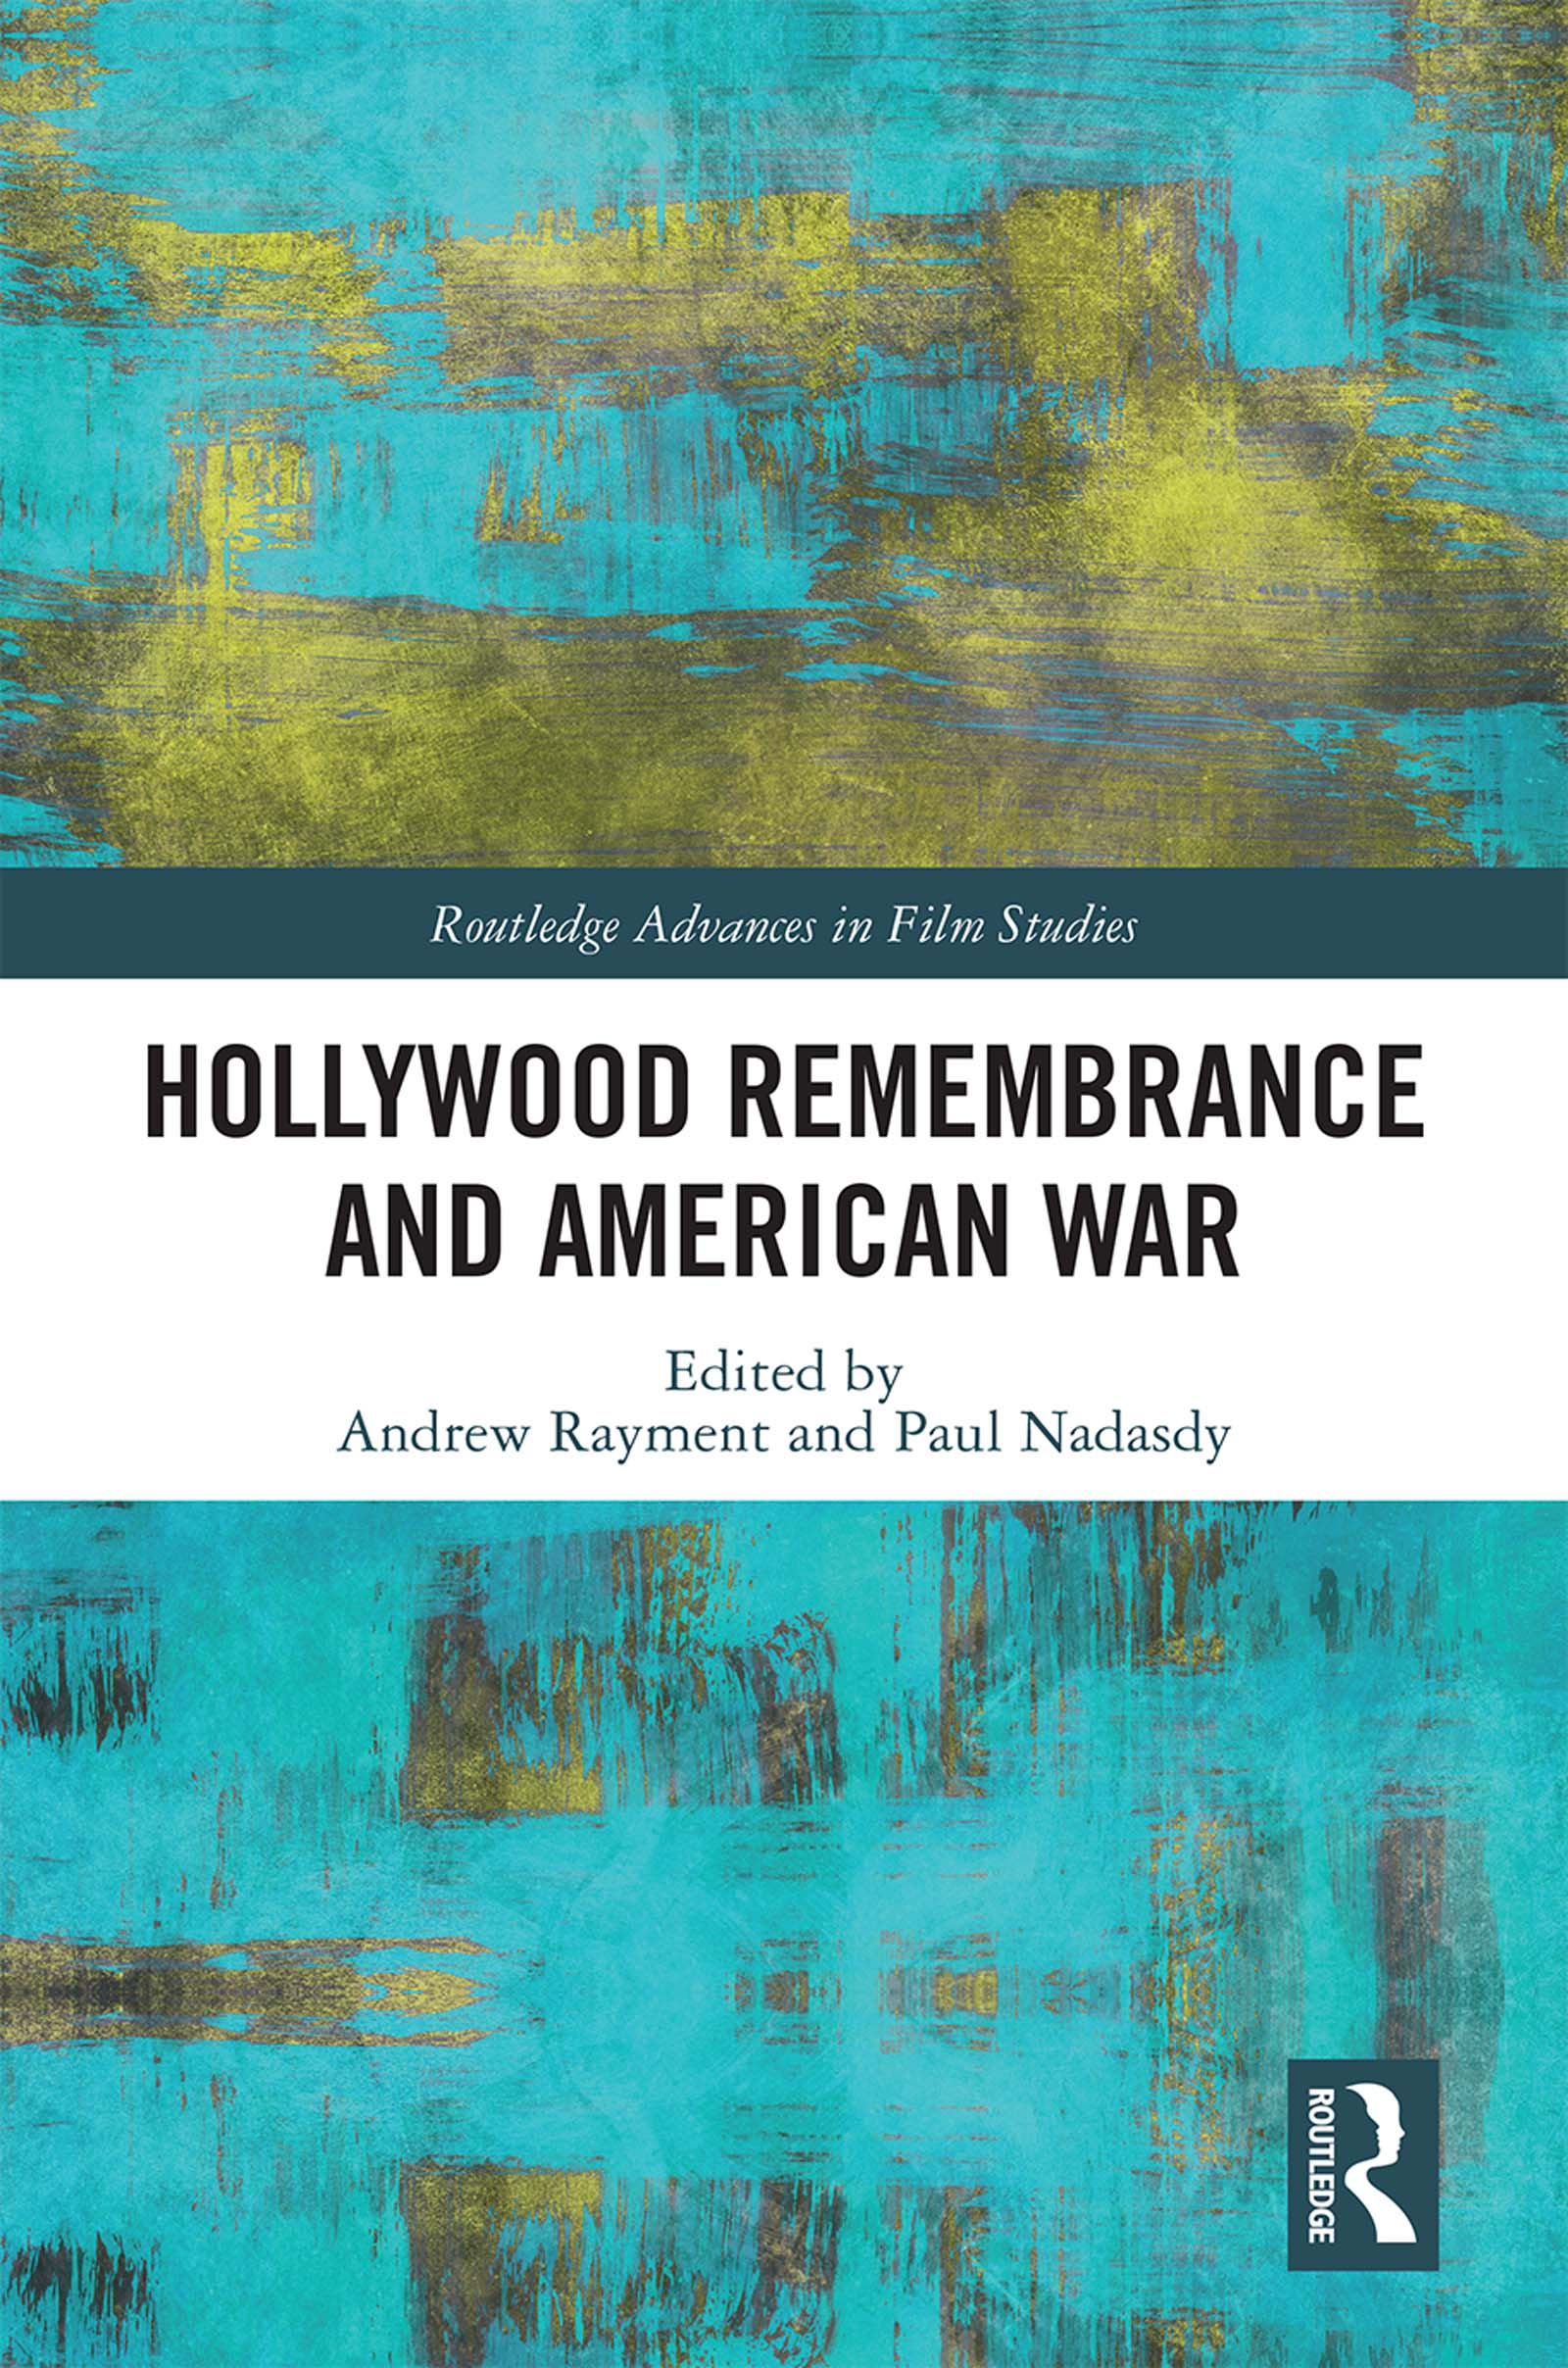 Hollywood Remembrance and American War